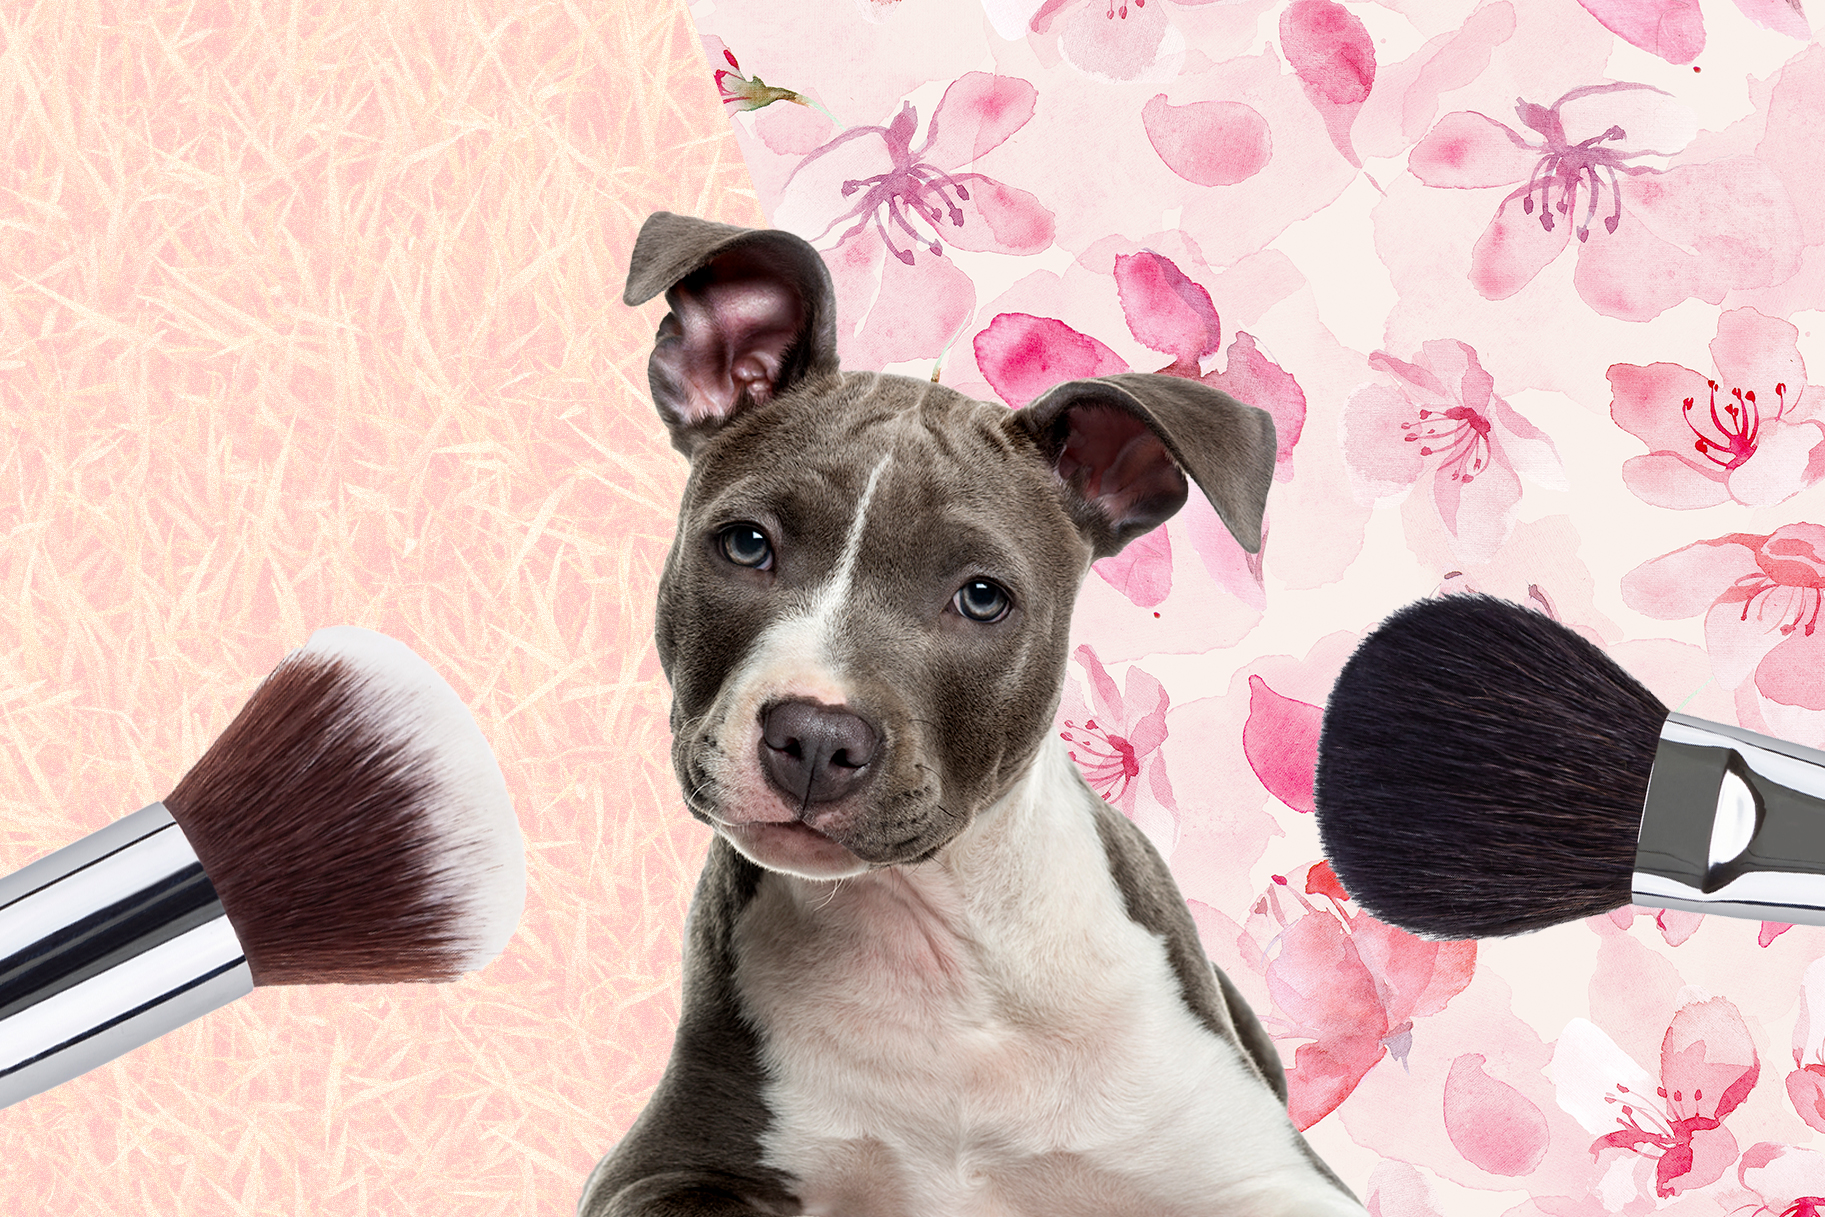 Dog Makeup Tutorials on Instagram: Dogs With Makeup Brushes